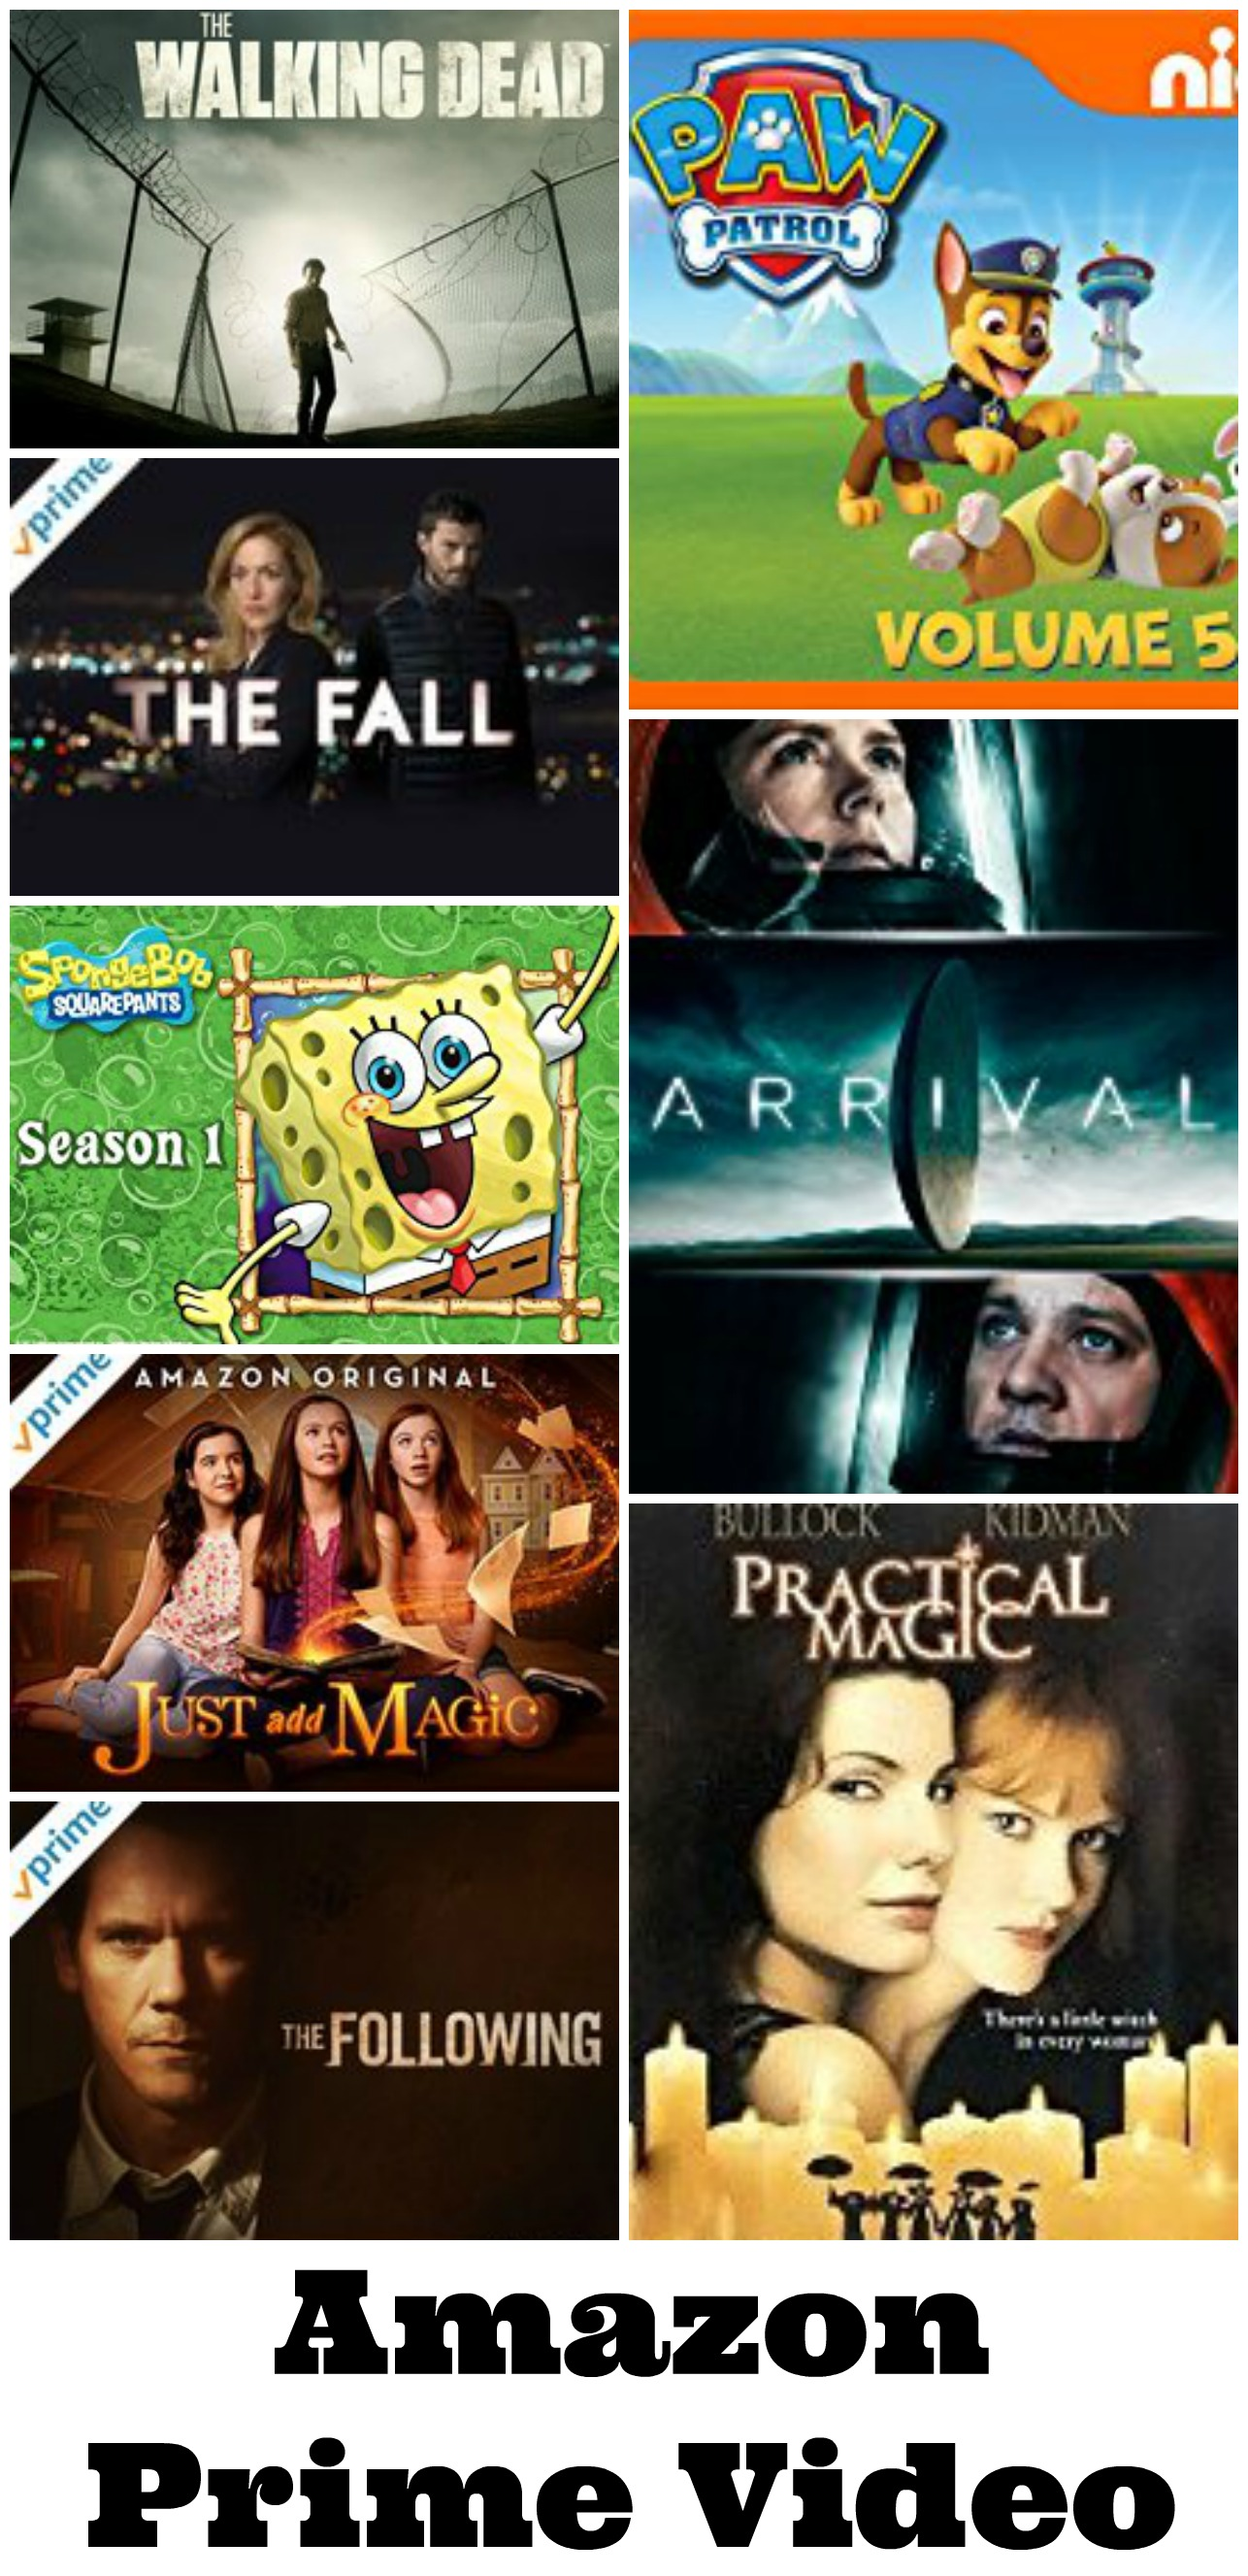 What I have been watching on Amazon Prime Video